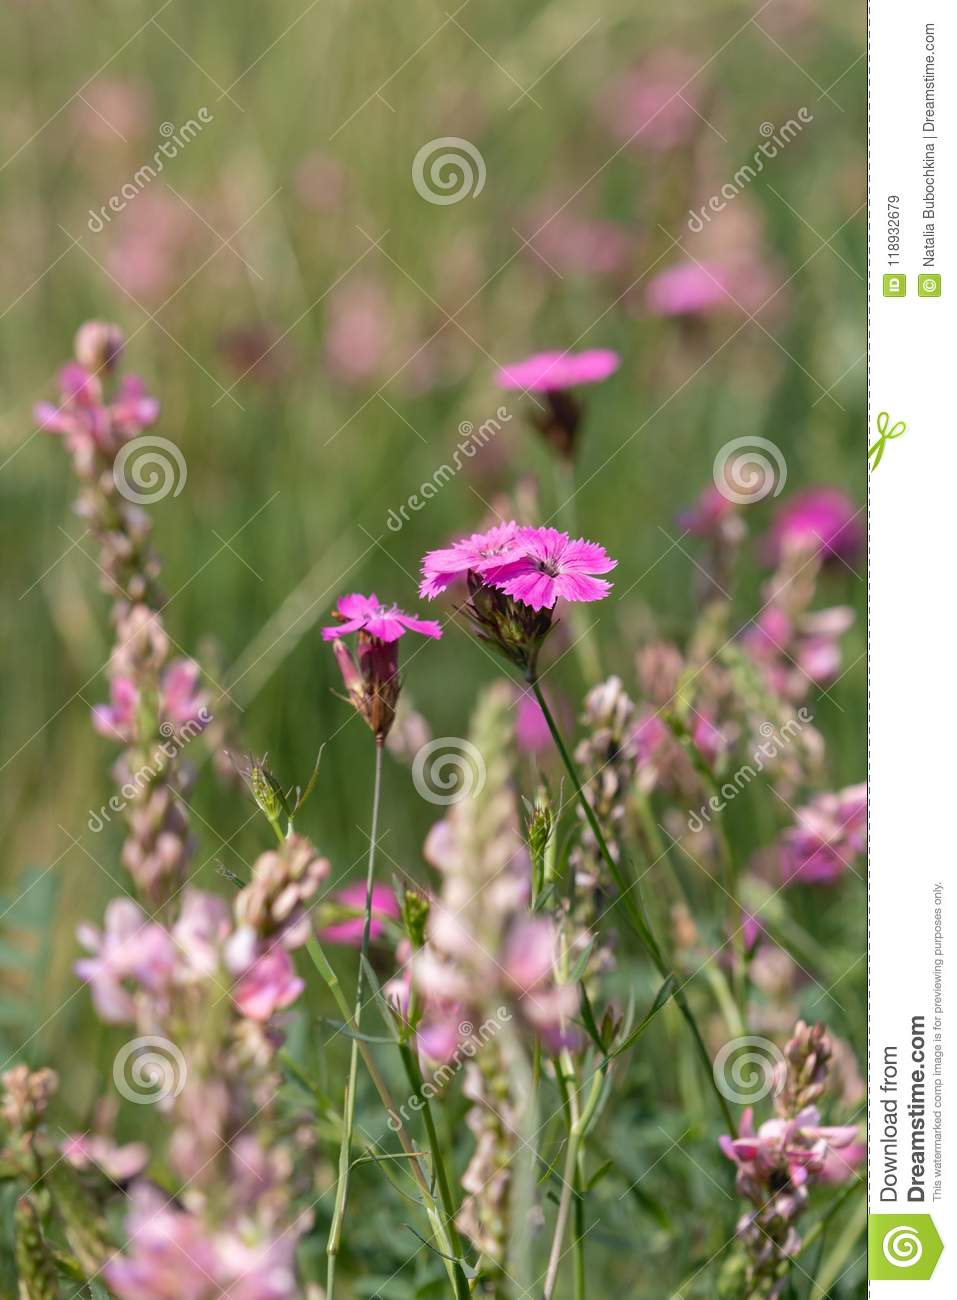 Summer Meadow Pink Flowers On Green Blurred Background Stock Image